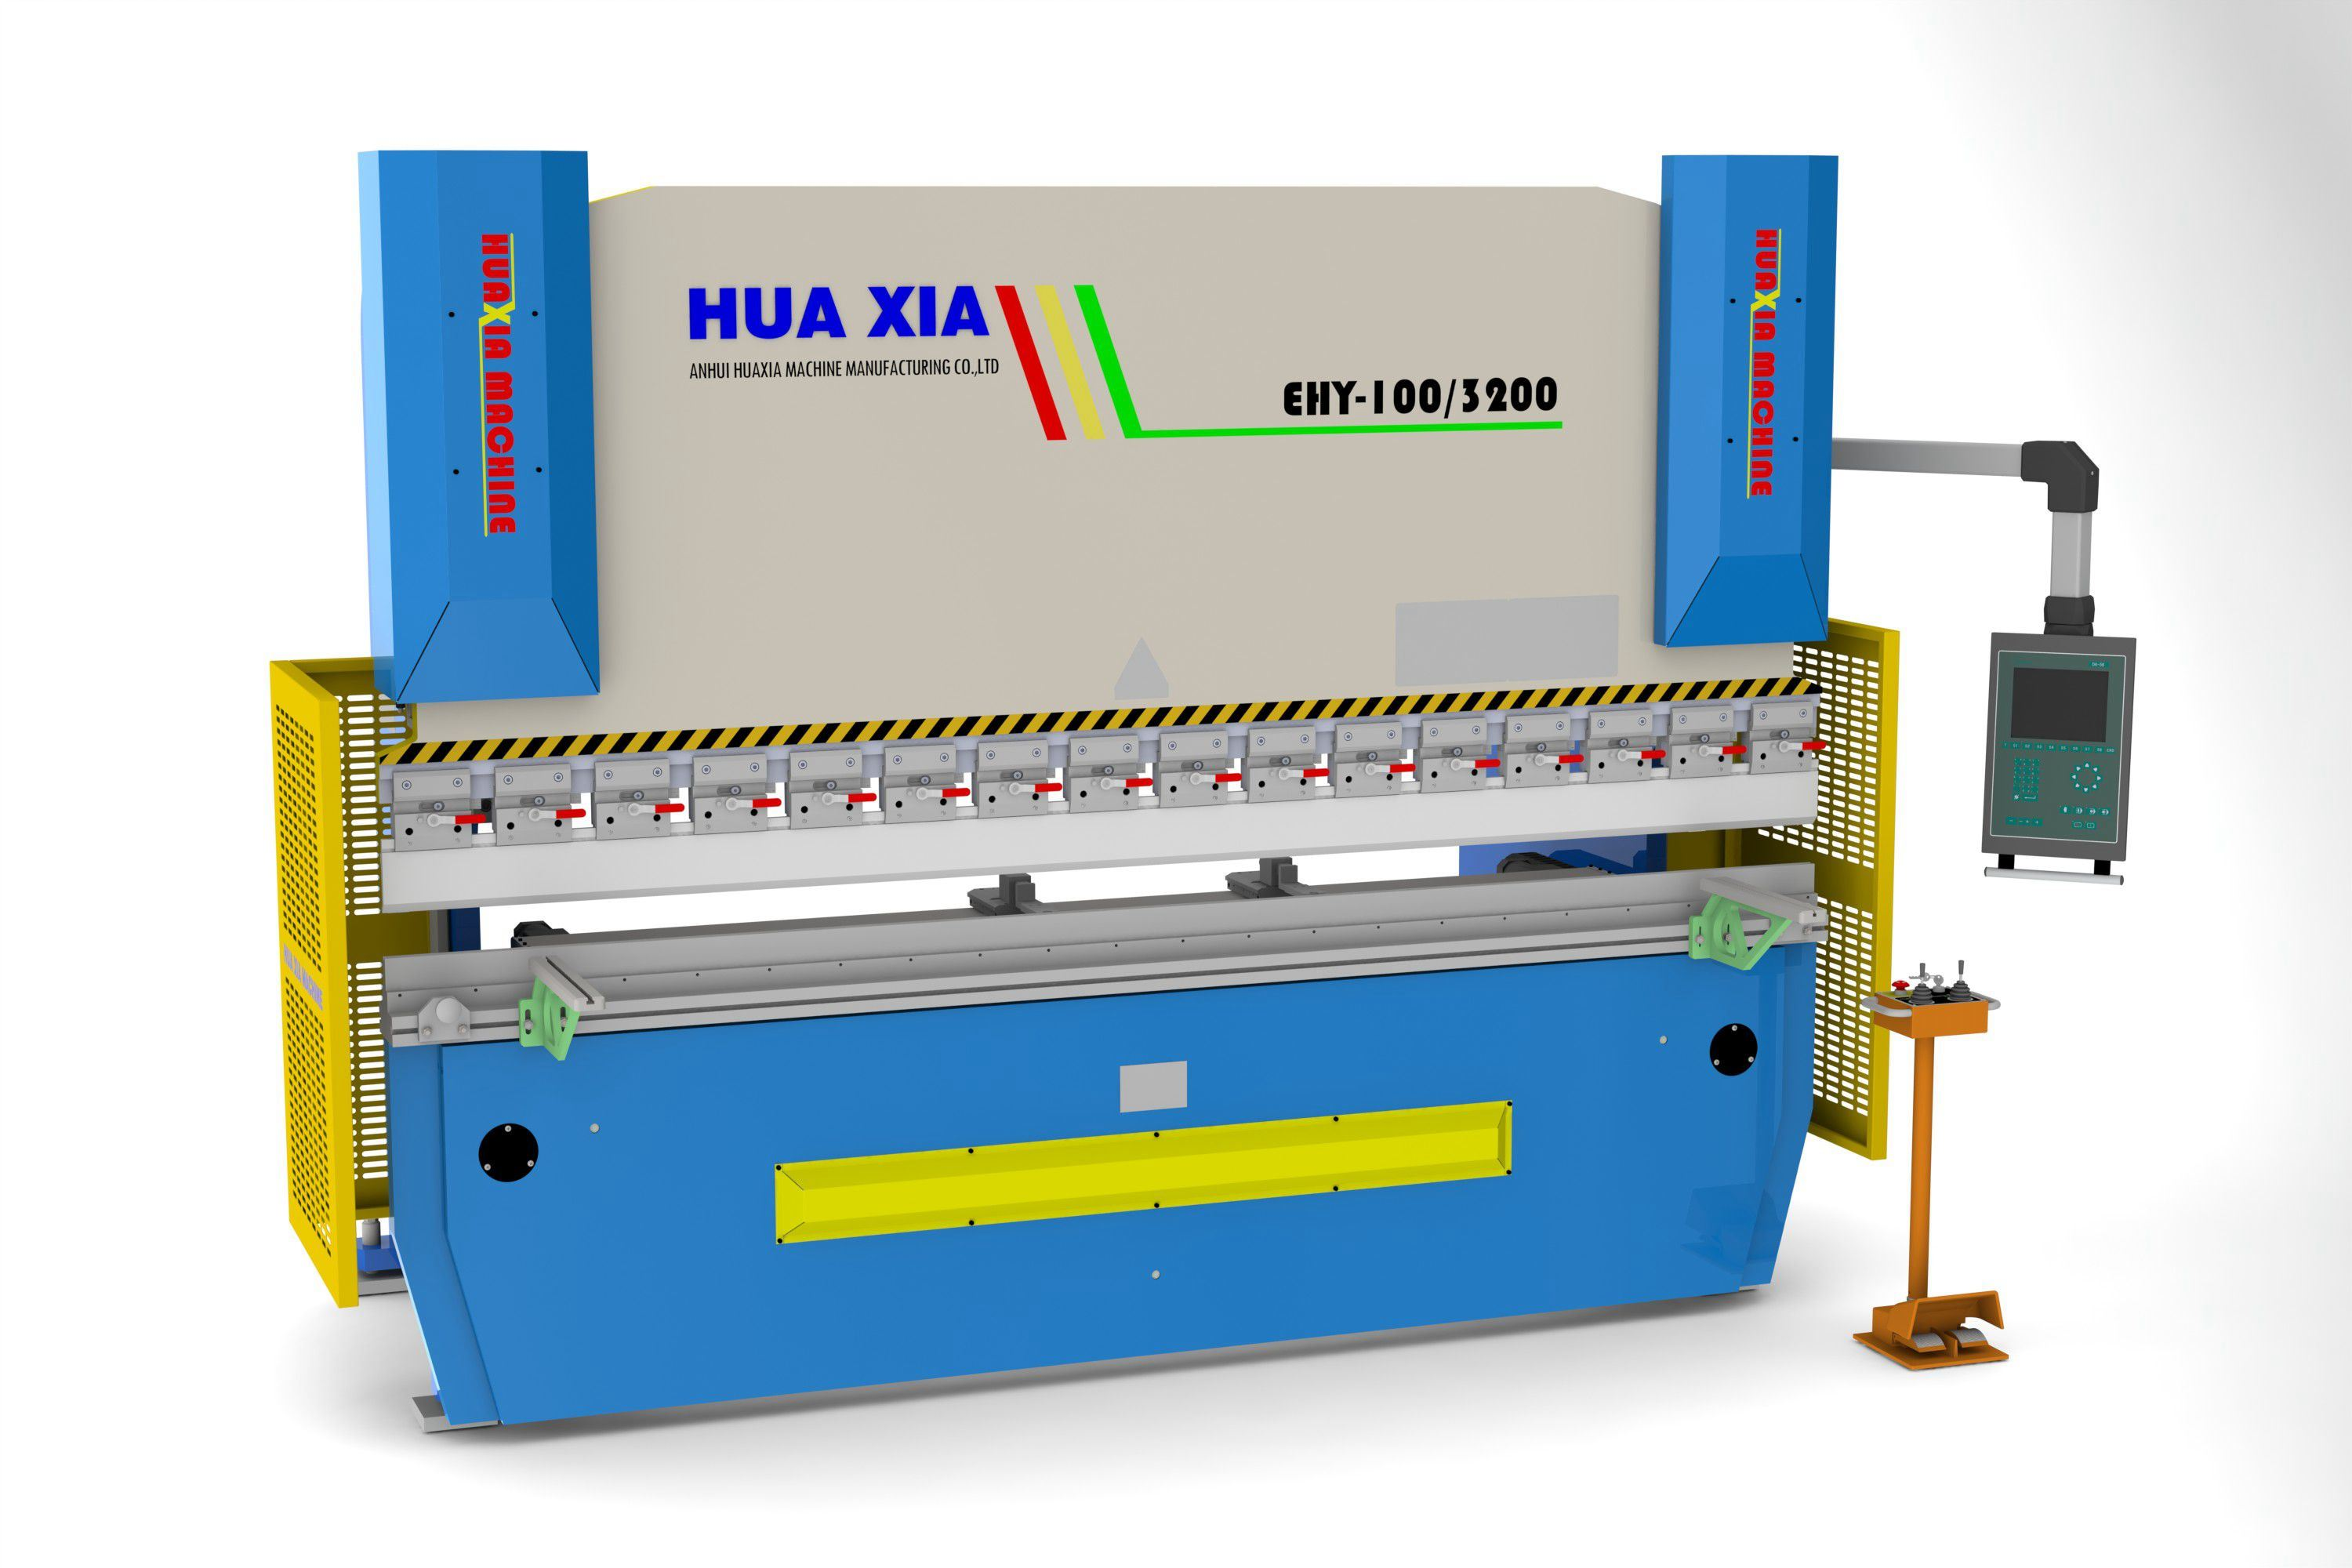 Wd67k Hydraulic CNC Press Brake Linear Encoder, Back Gauge up and Down Da52 Control or Other CNC Press Brake